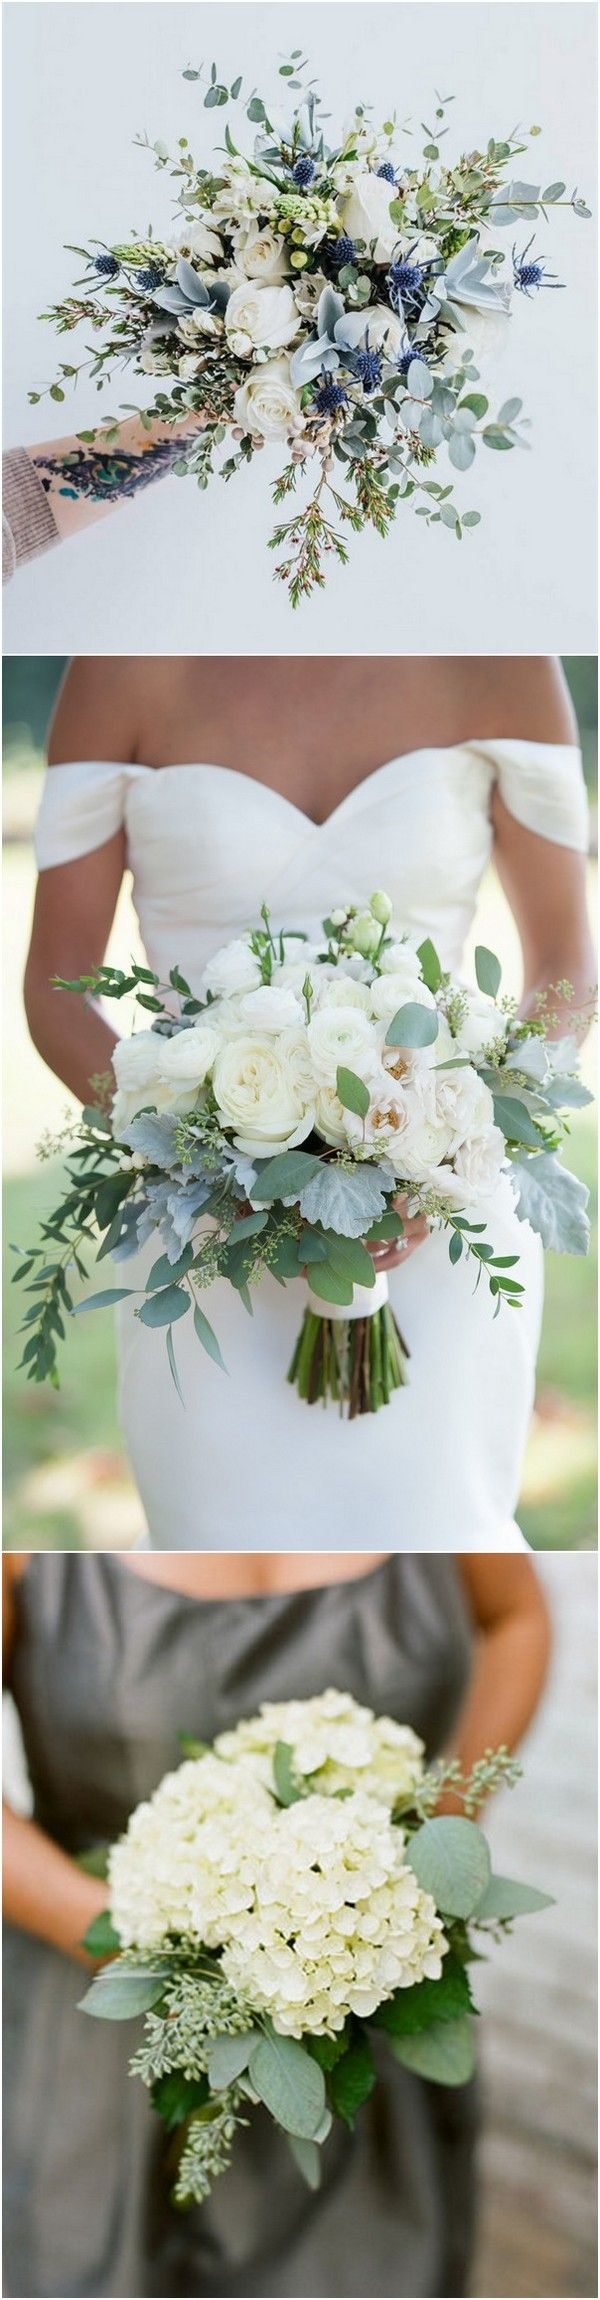 Top white and green wedding bouquet ideas youull love